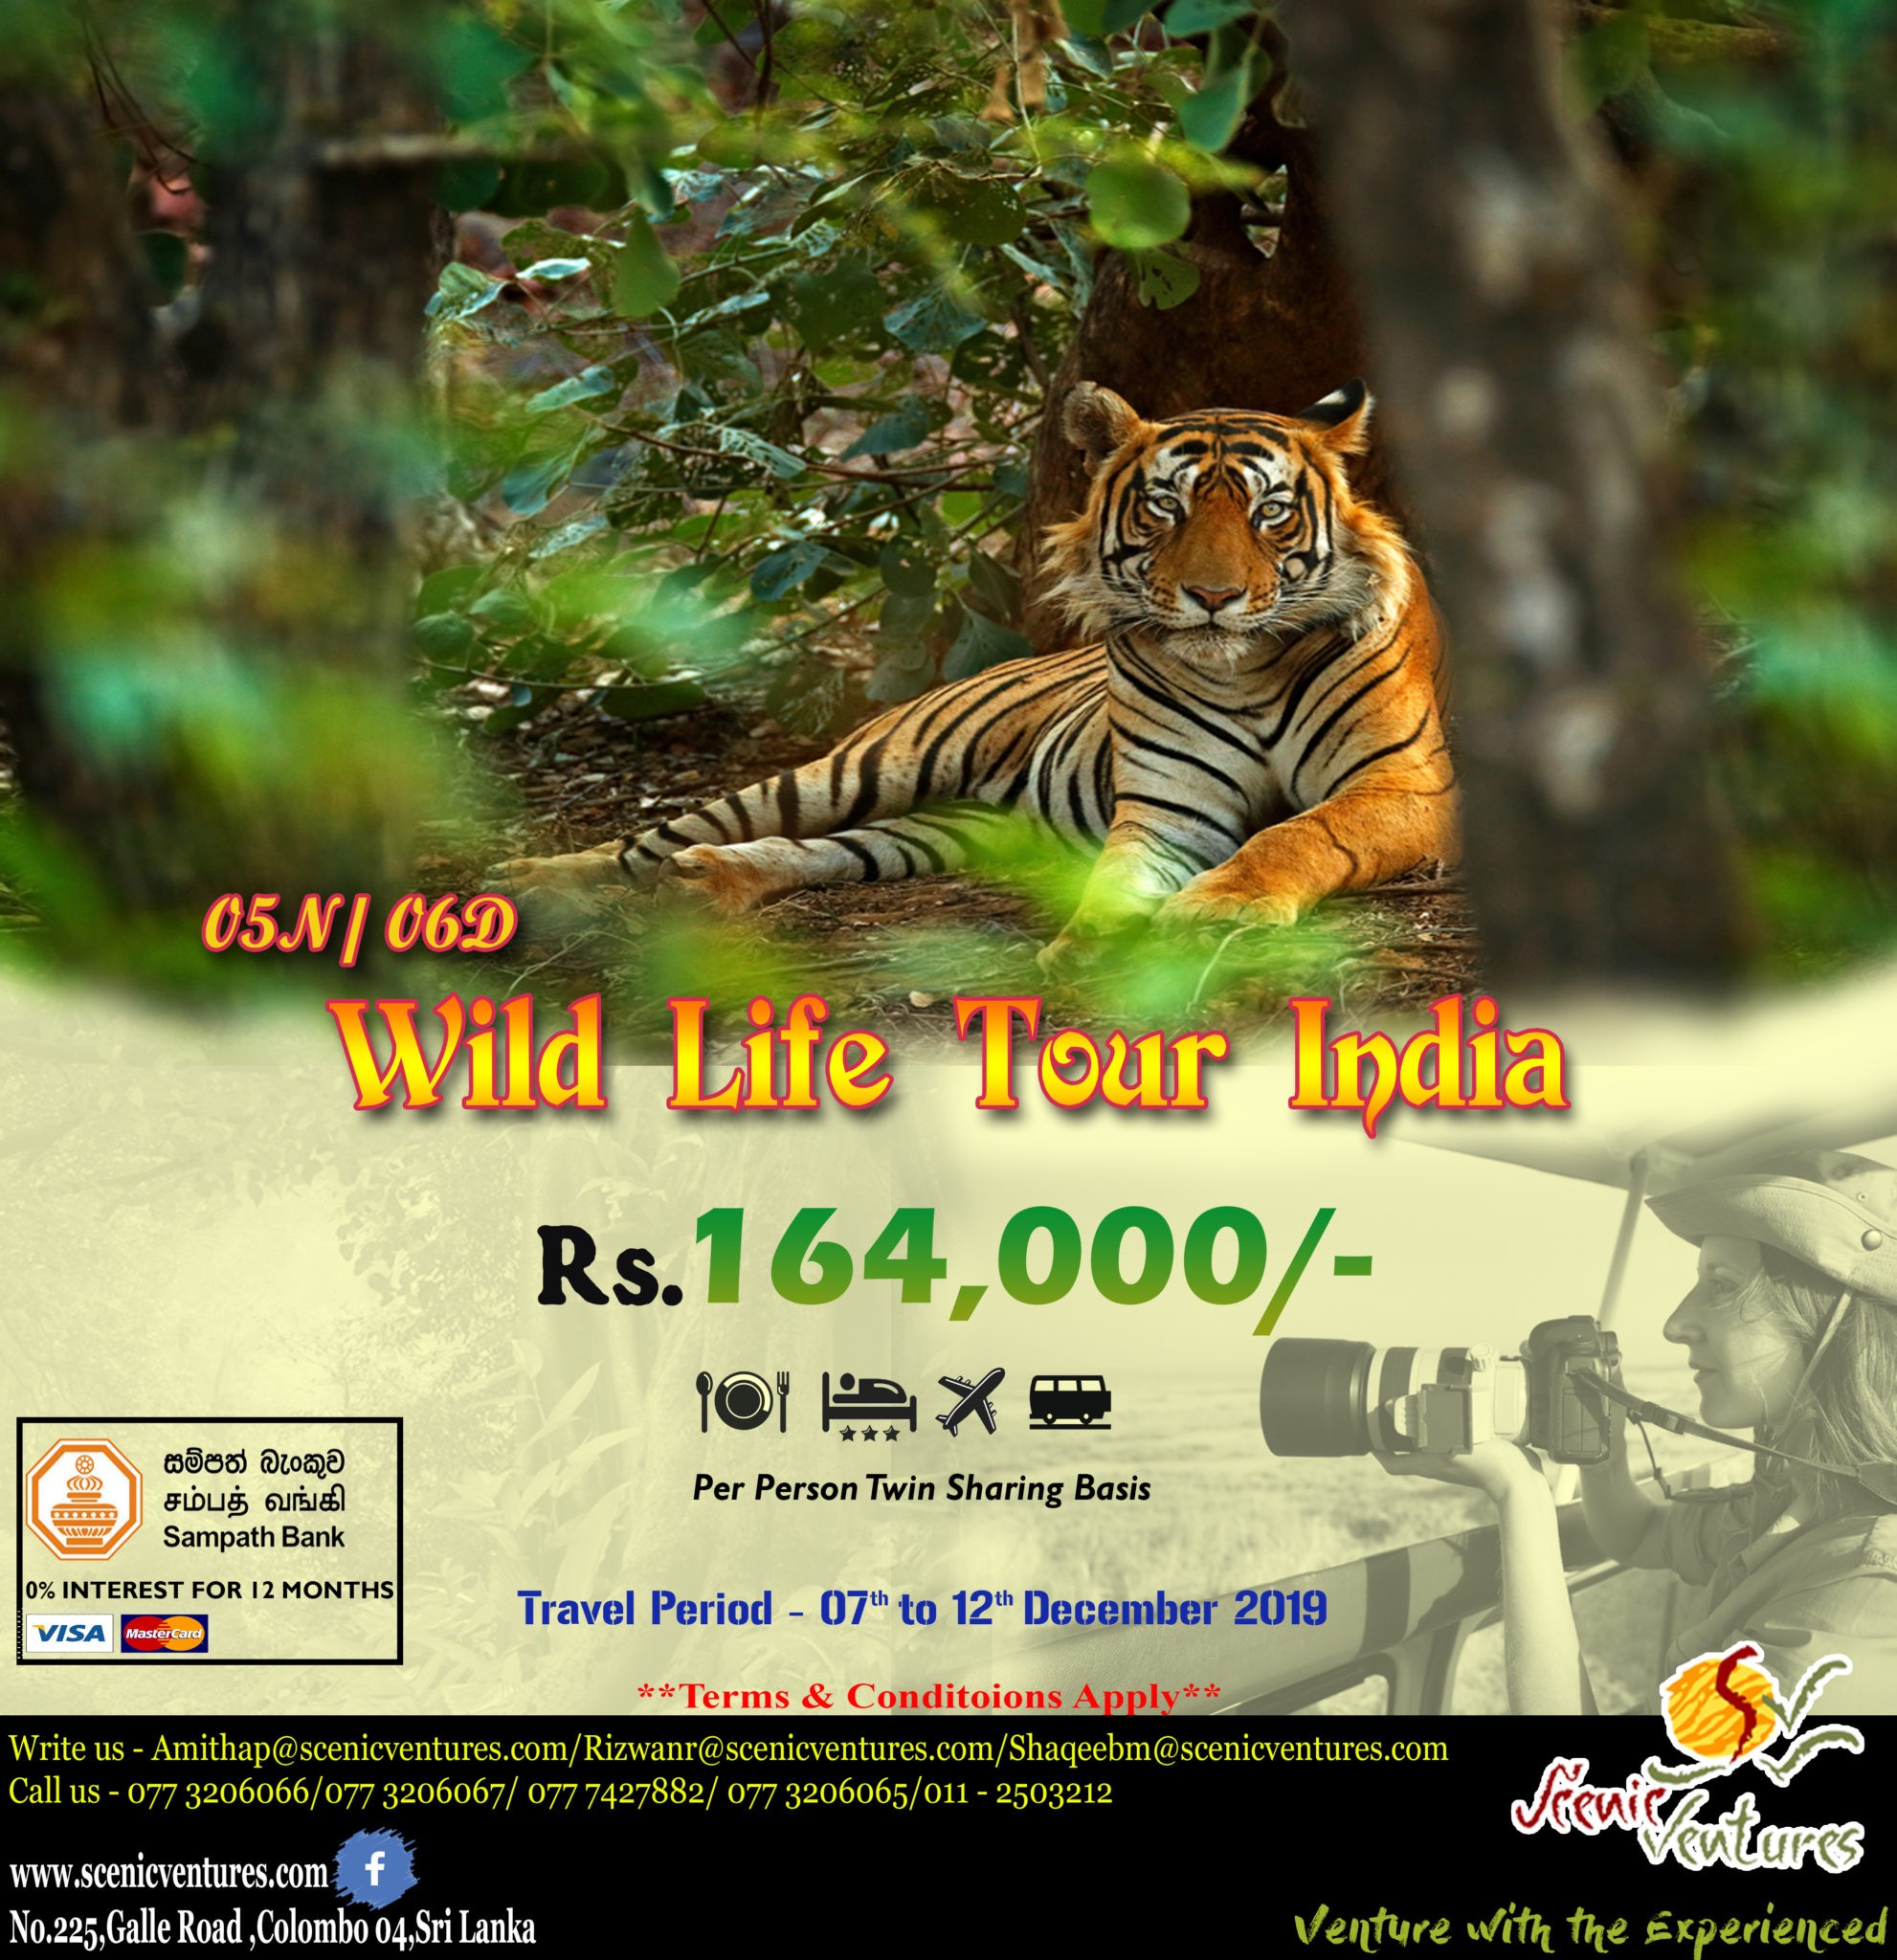 WILDLIFE TOUR INDIA